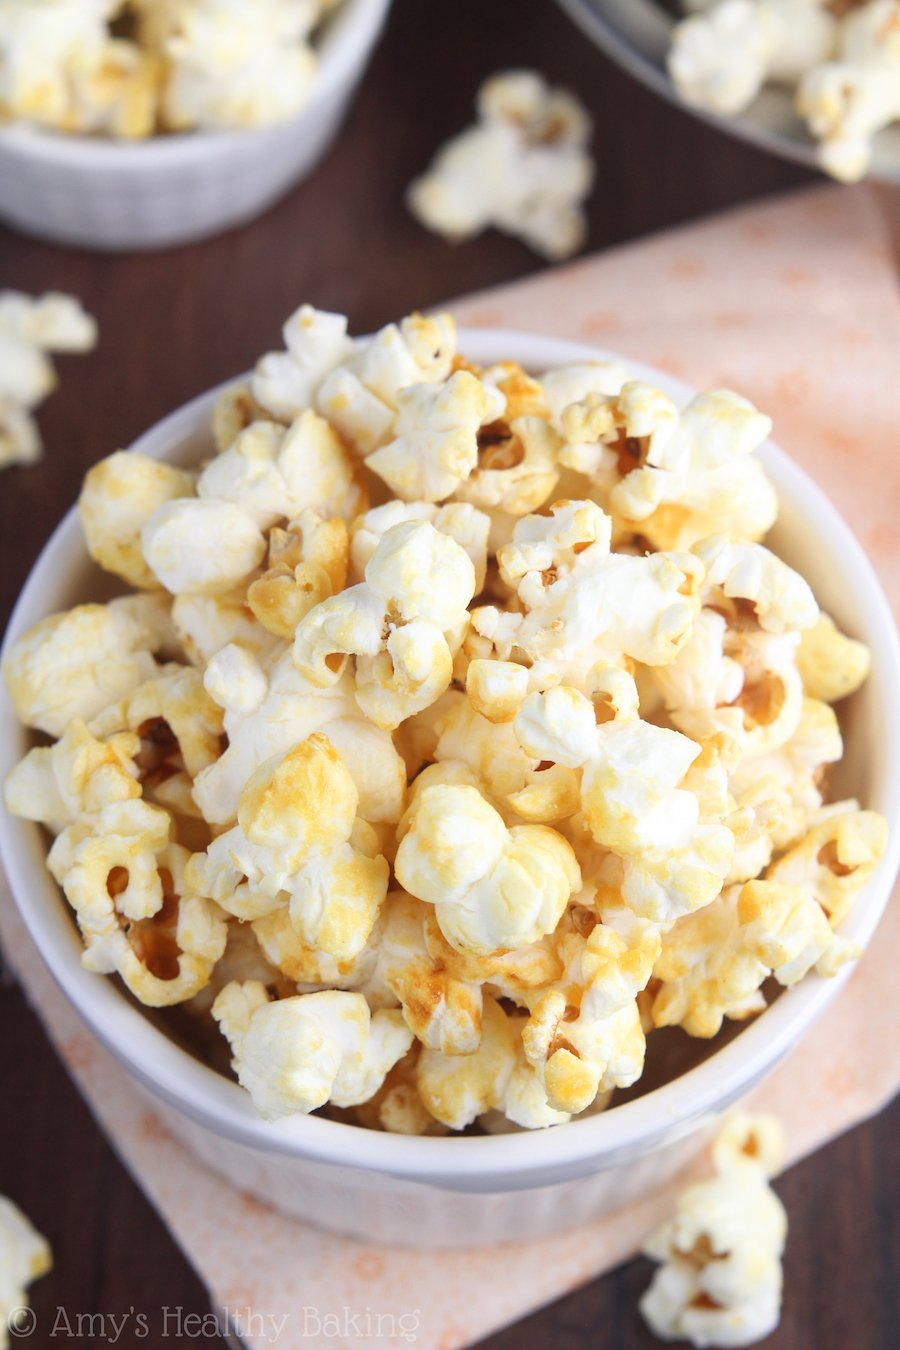 Skinny Kettle Corn -- you only need 4 ingredients & a pot to make this easy treat at home! Barely 100 calories in each big serving!